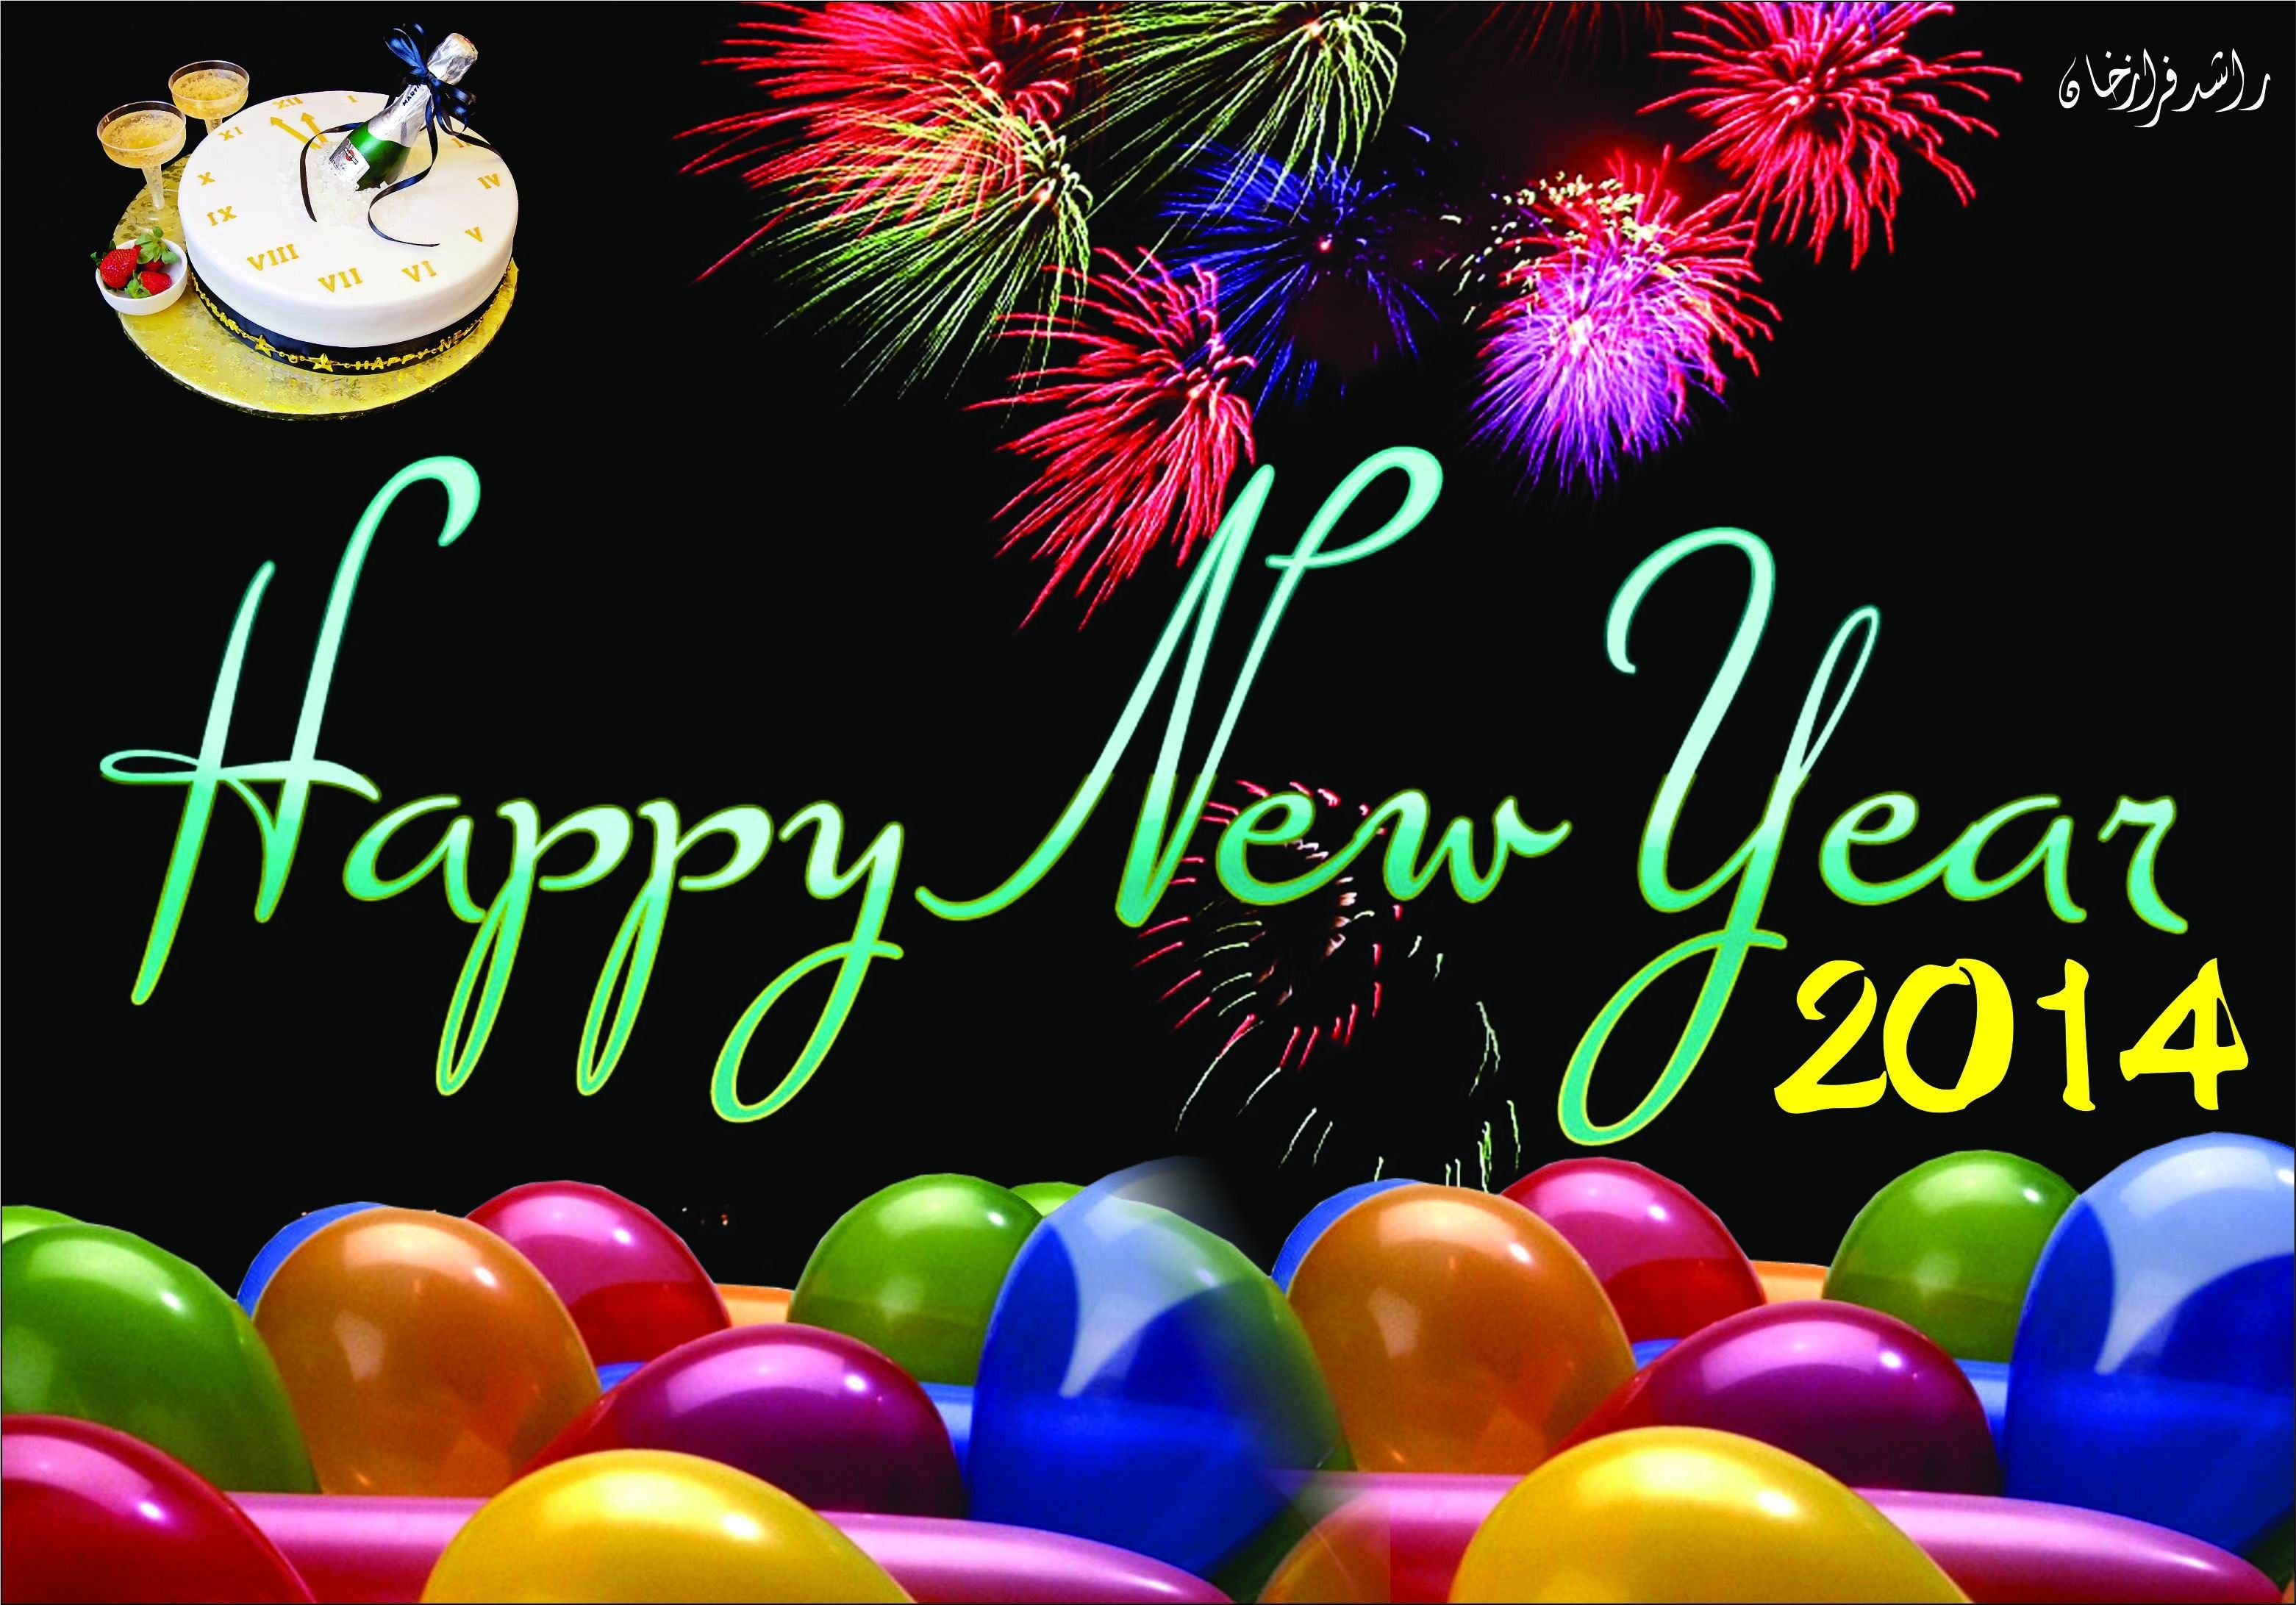 Marvelous new year wallpaper happy new year 2014 2014 resolutions marvelous new year wallpaper happy new year 2014 m4hsunfo